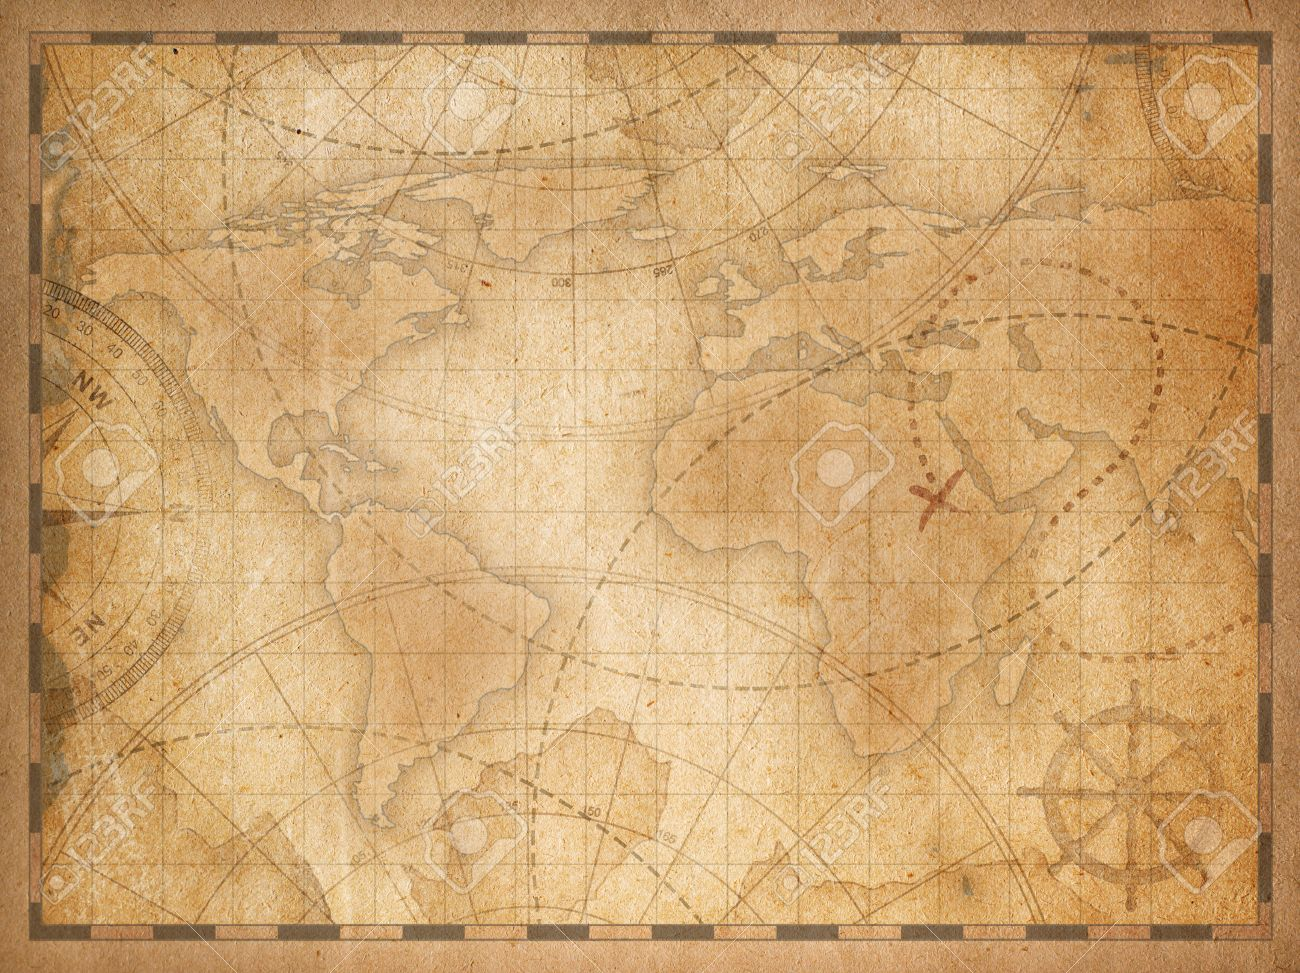 Old World Map Background Stock Photo Picture And Royalty 1300x973